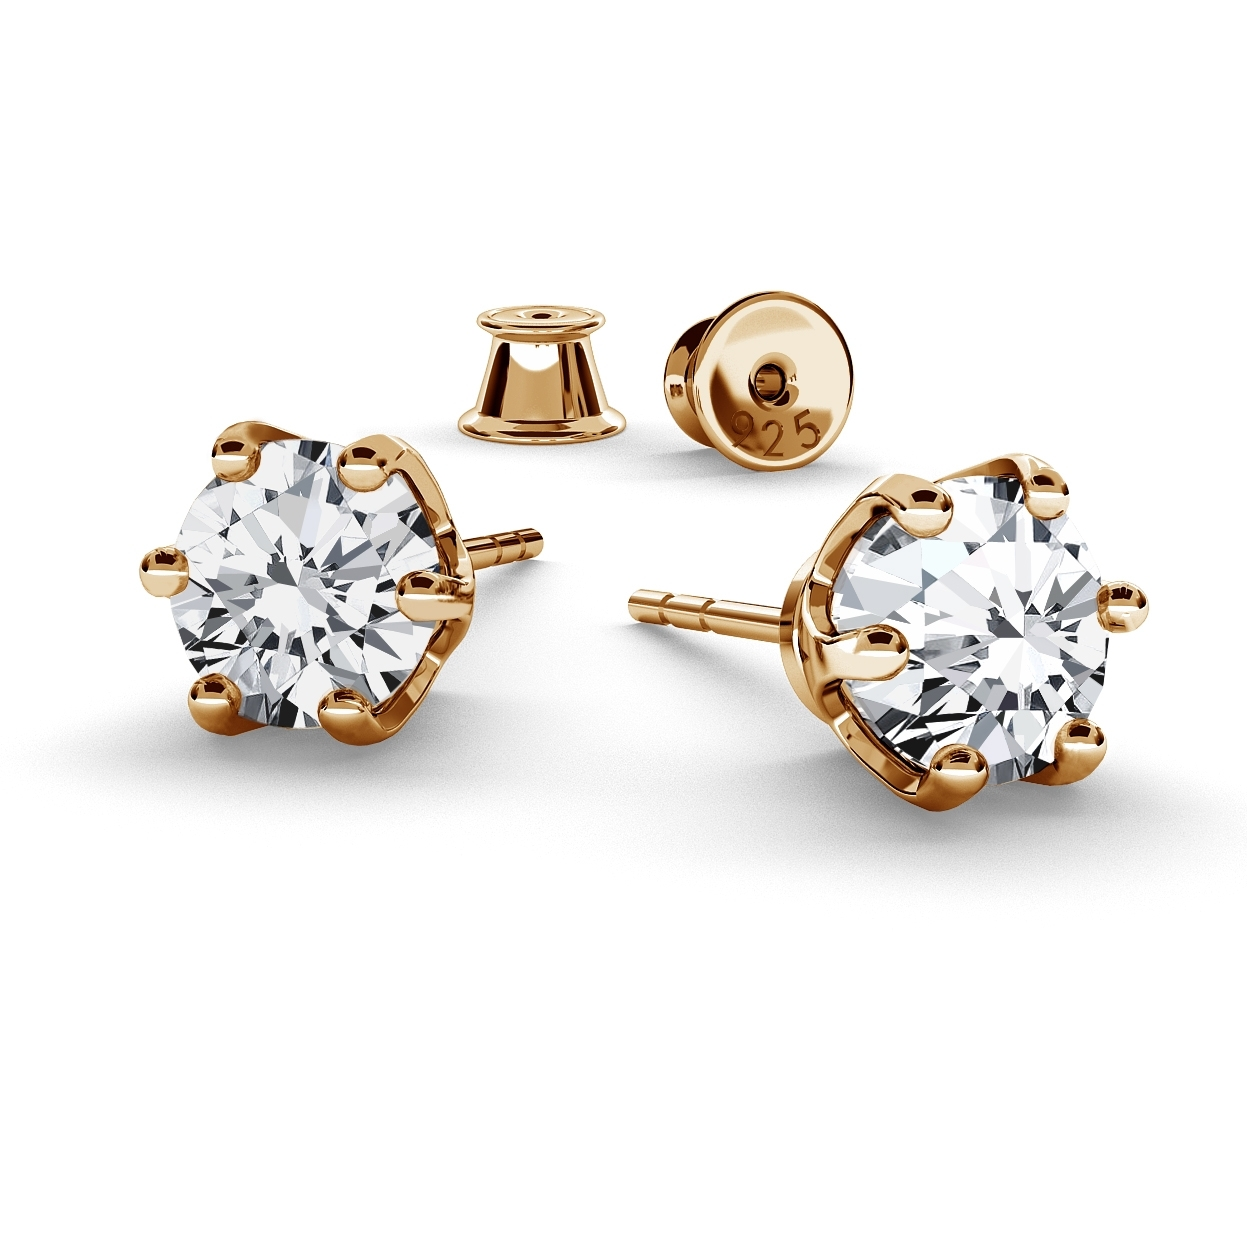 EARRINGS SWAROVSKI ZIRCONIA 6 MM, RHODIUM OR GOLD PLATED